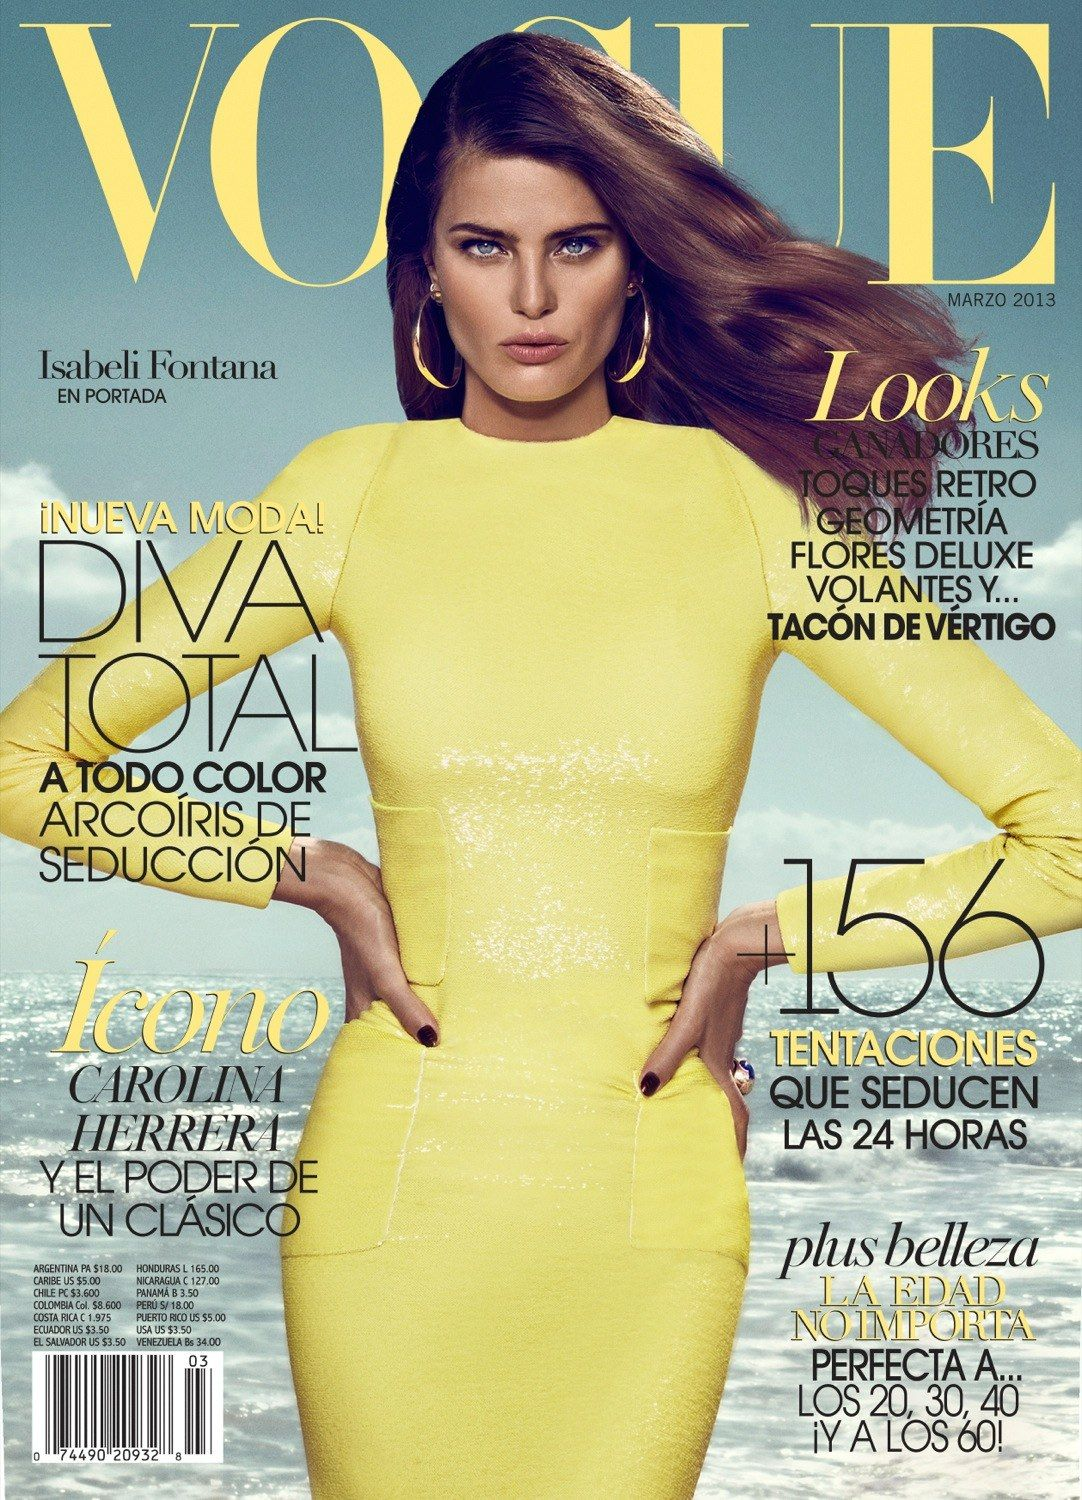 Fontana isabeli for vogue thailands december issue new photo